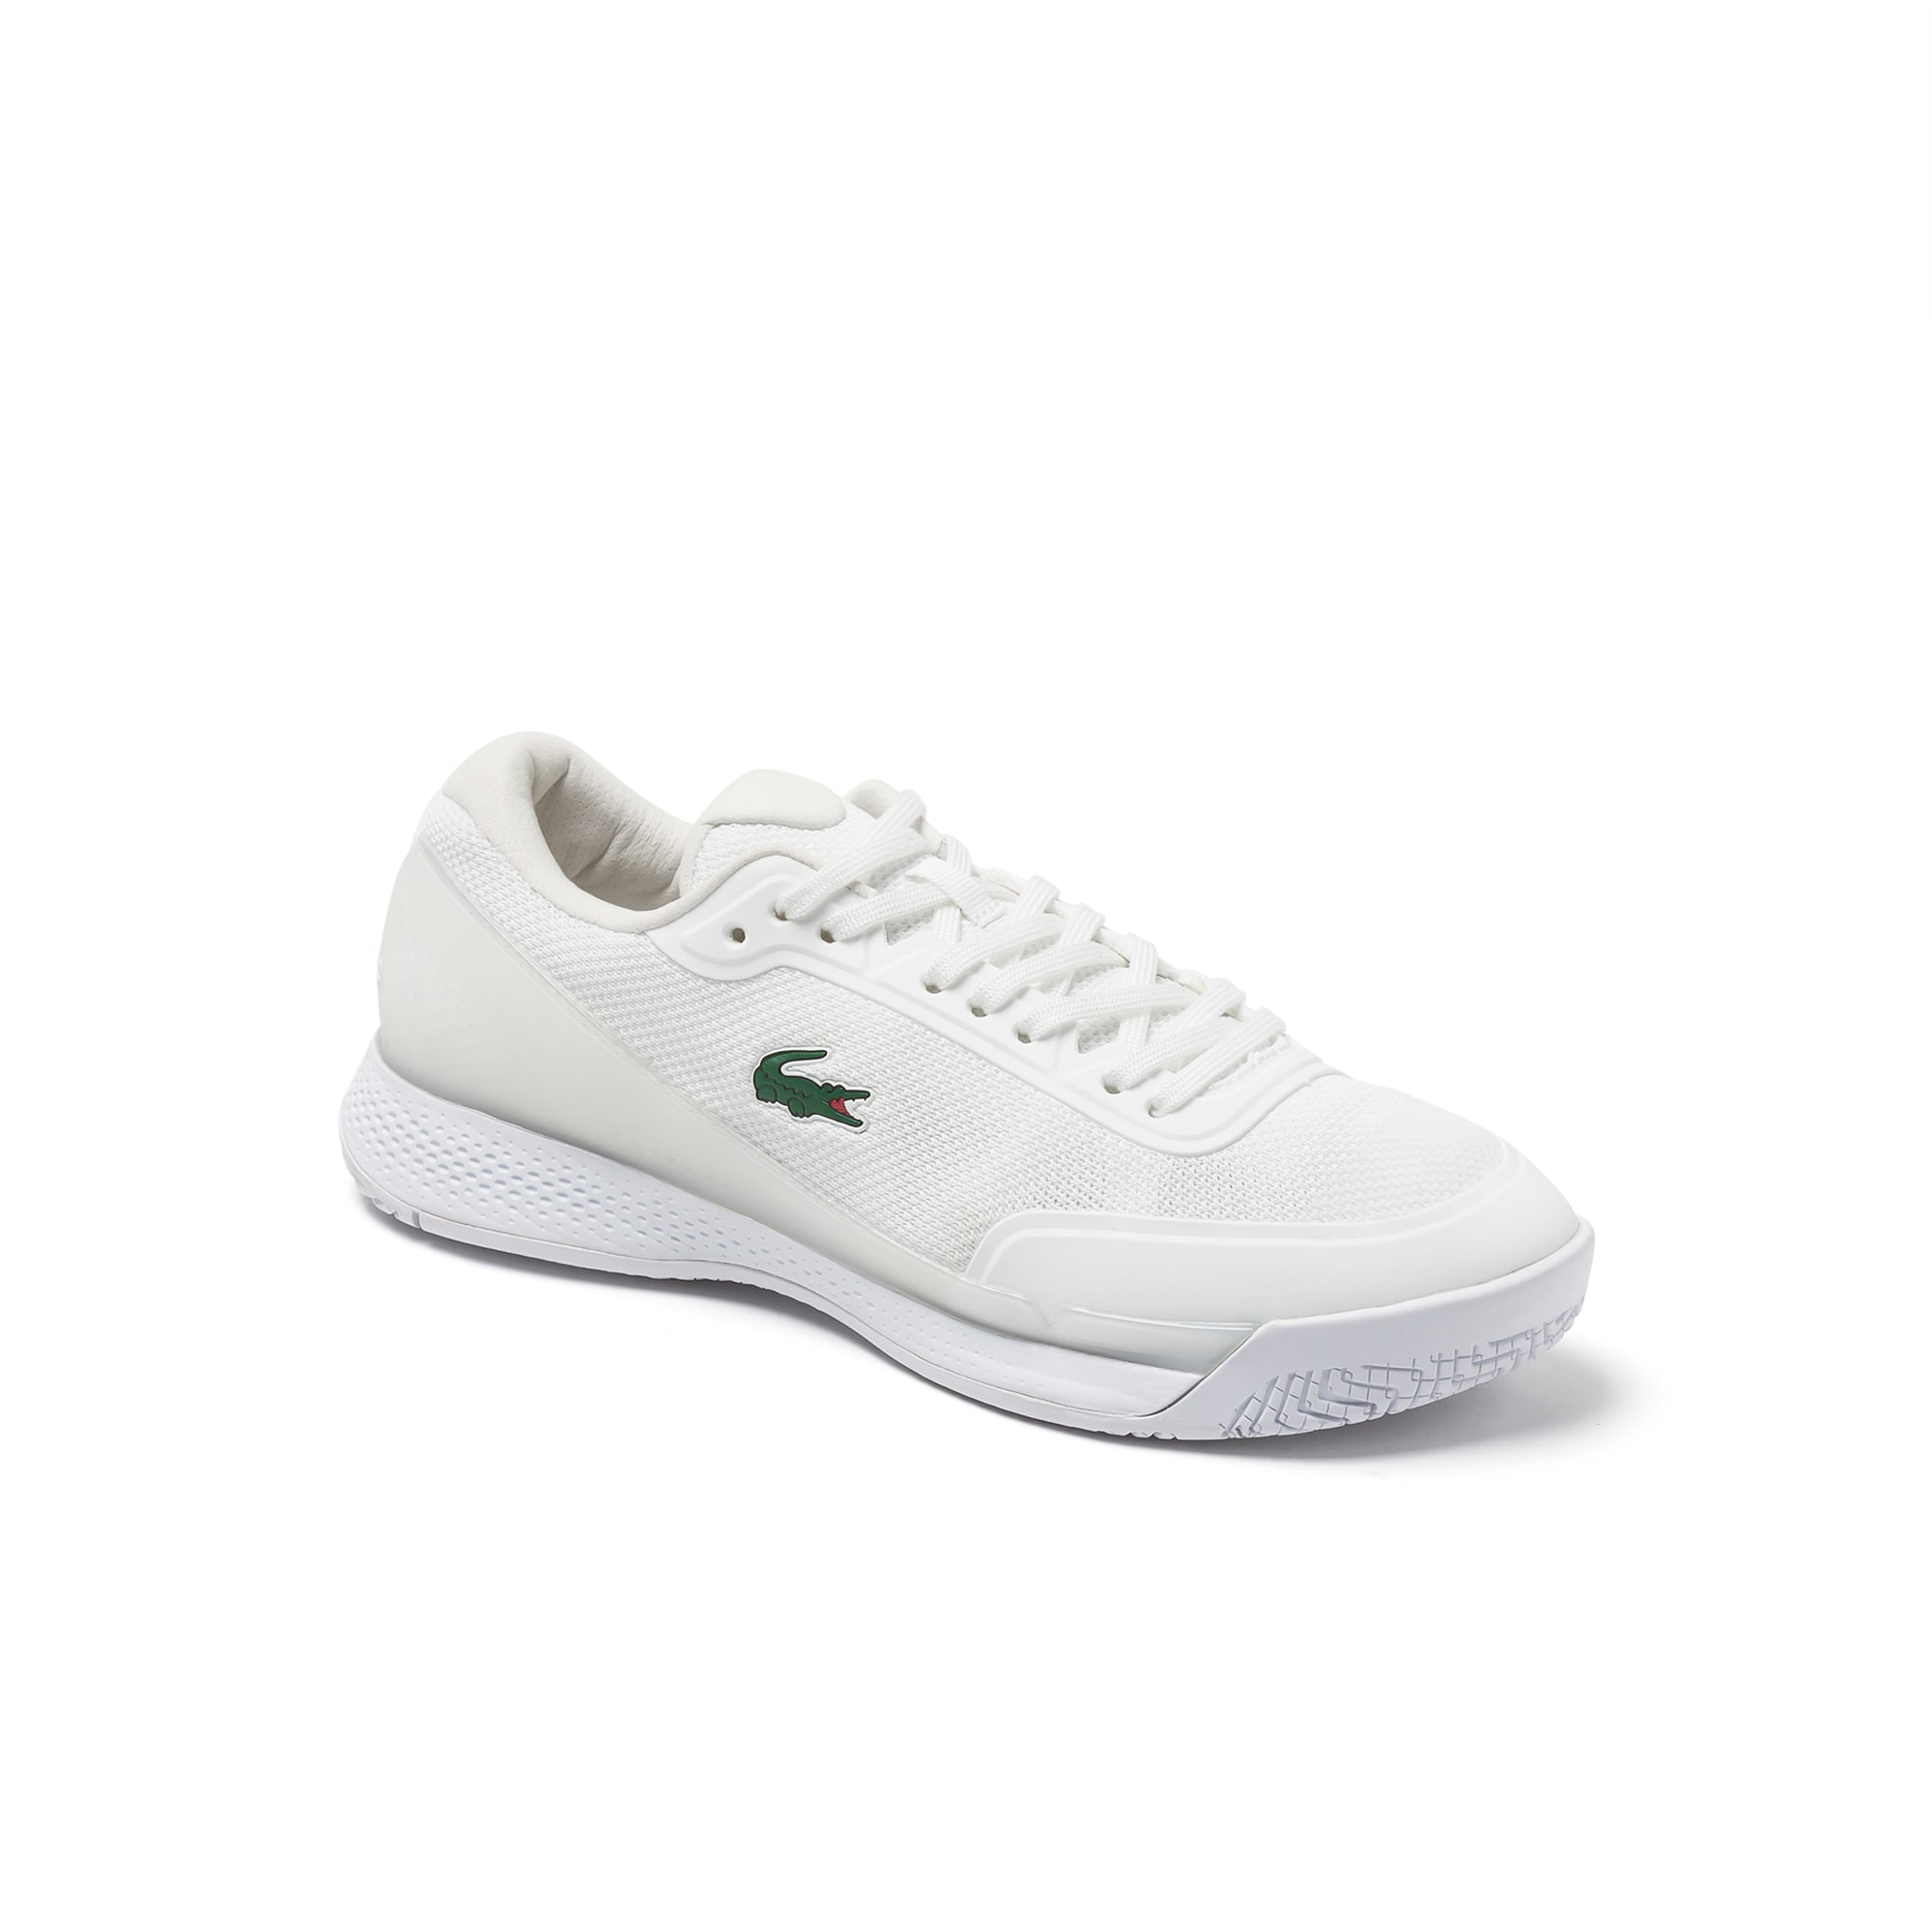 Women's LT PRO Performance Technical Canvas Sneakers